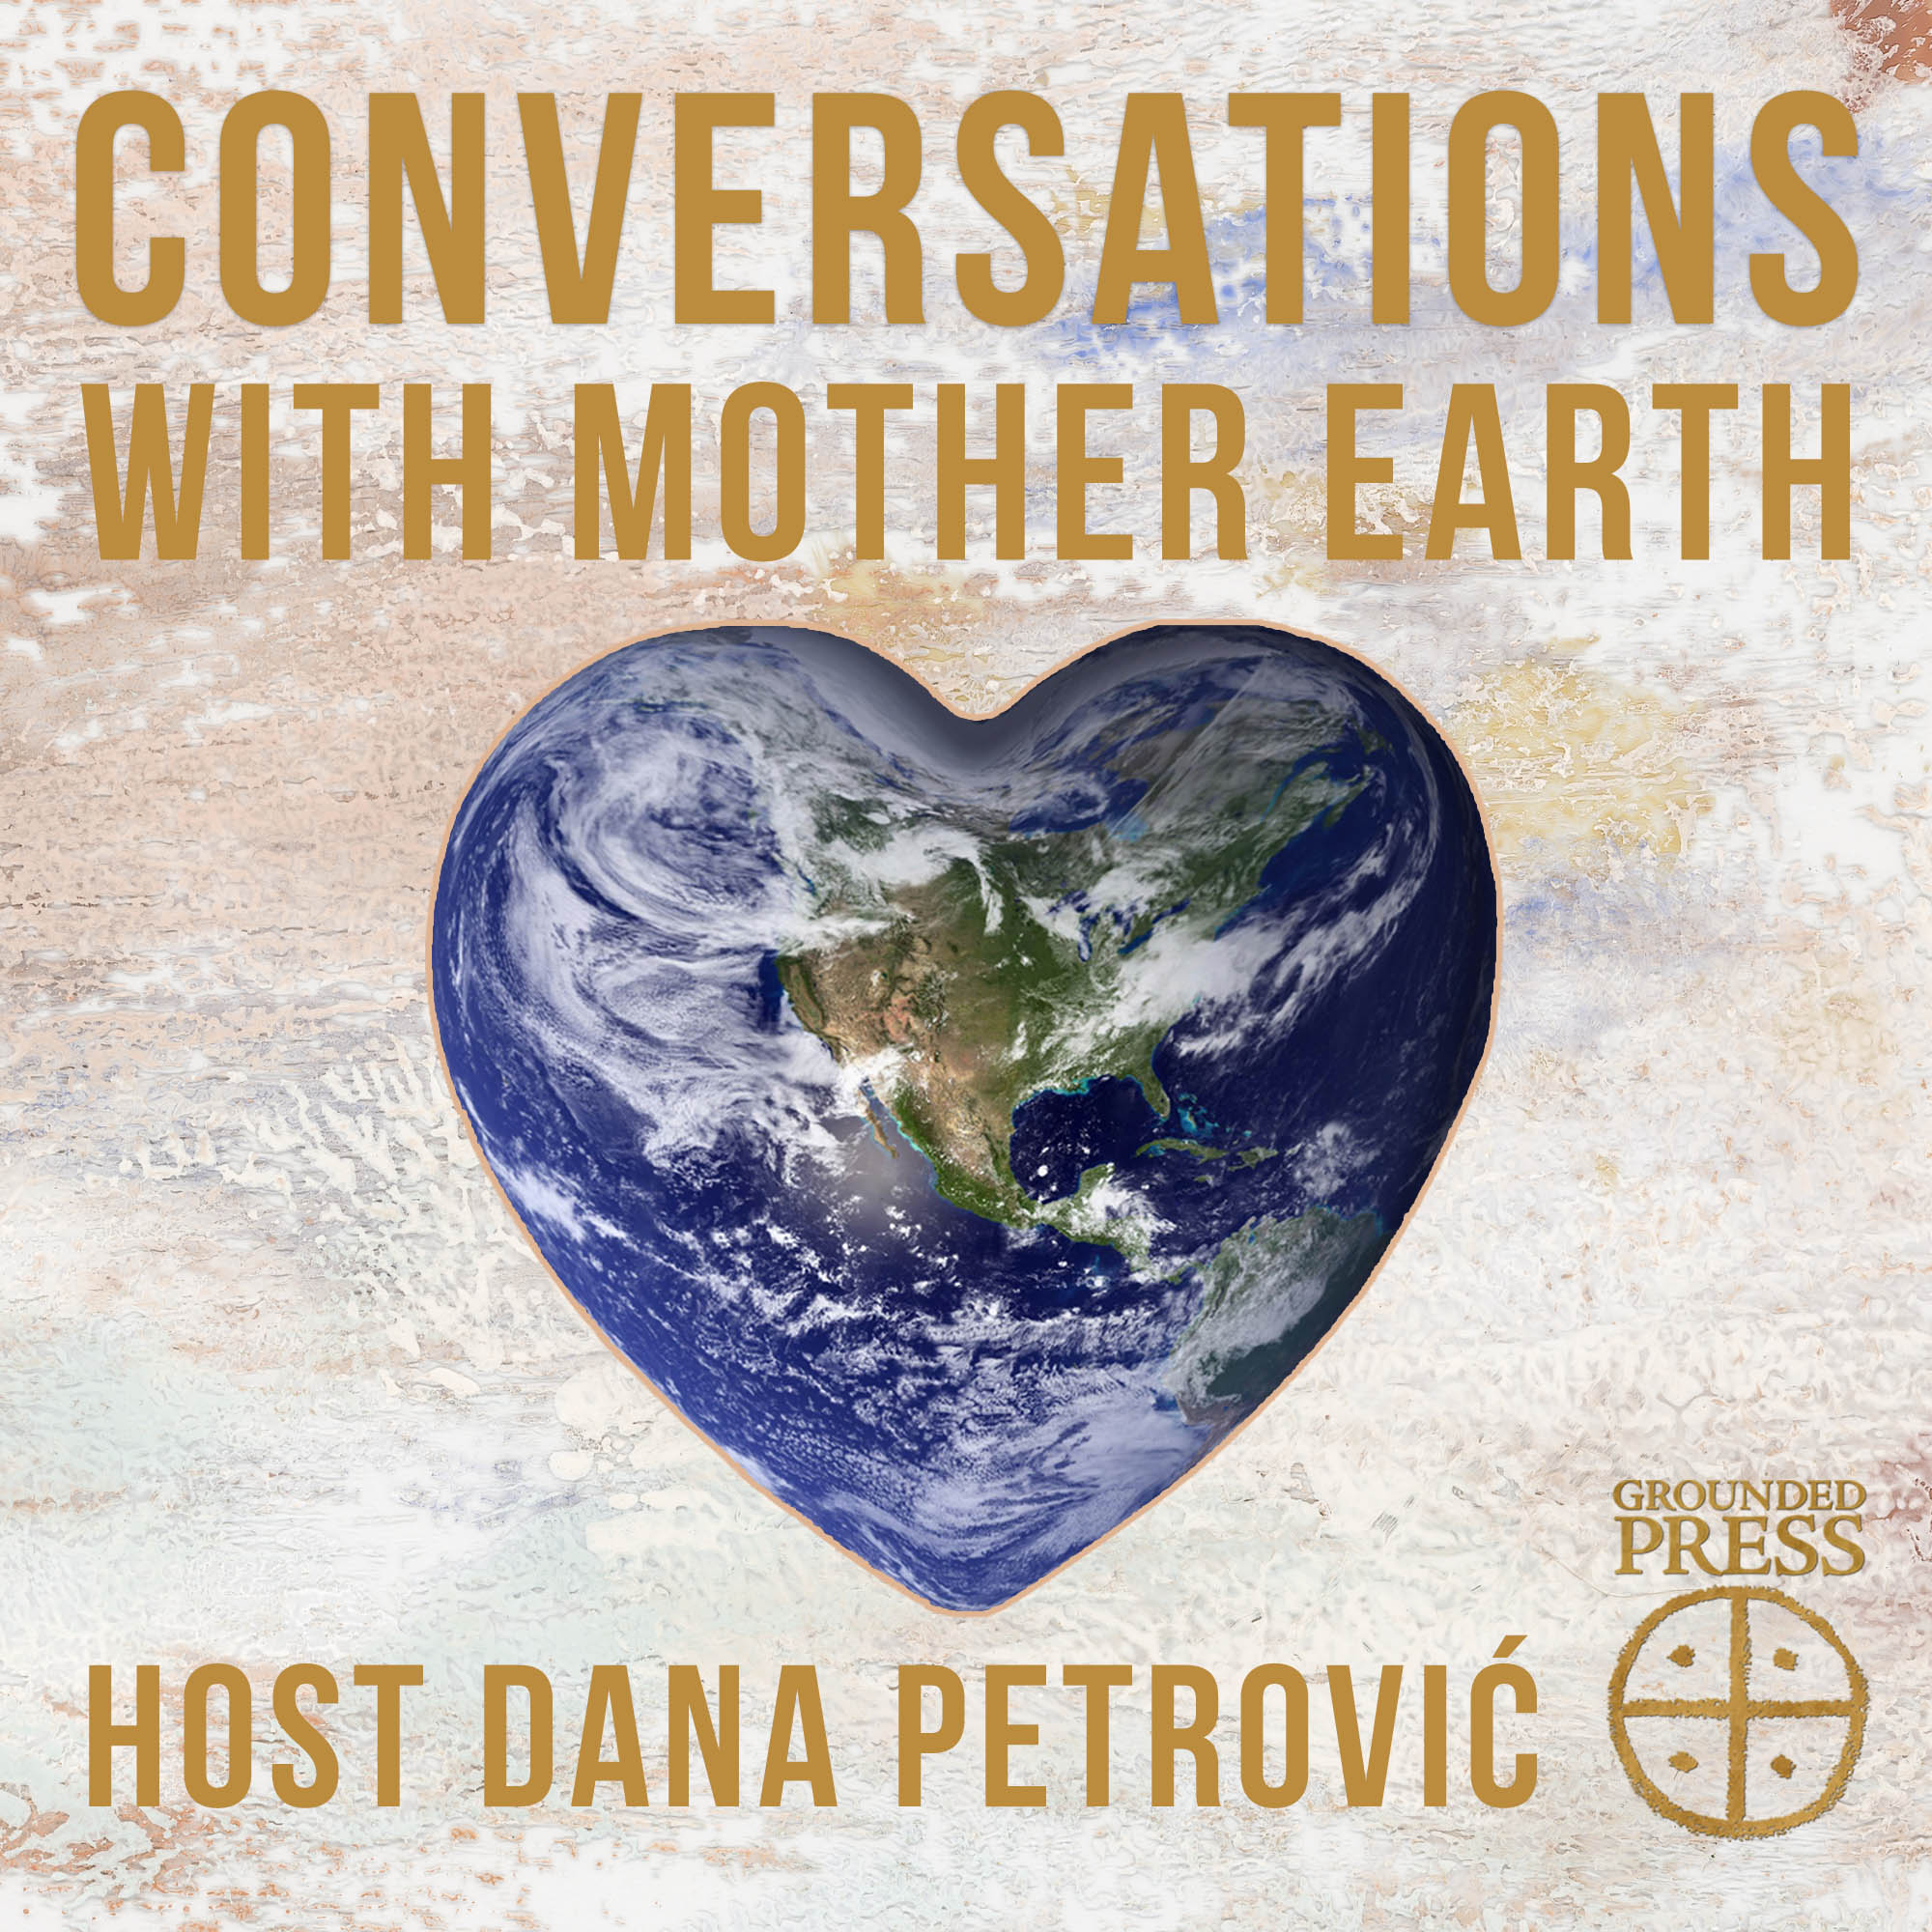 Conversations with Mother Earth